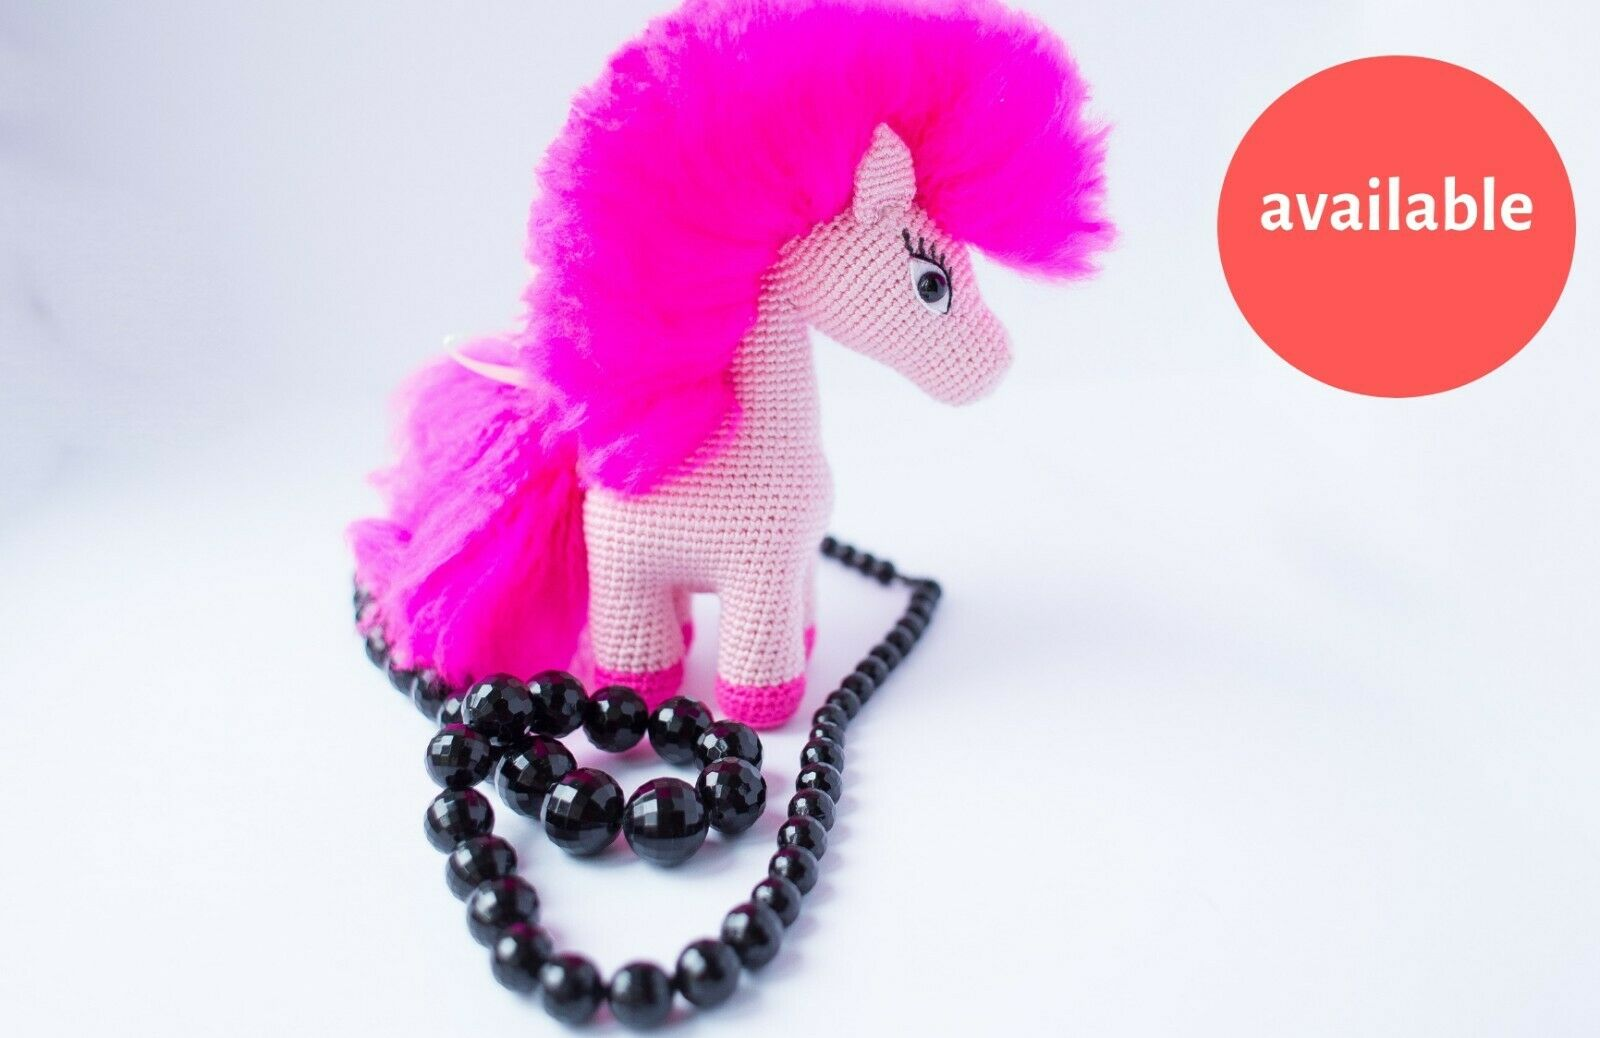 My Little Pony Pinkie Pie 8.27 in Gift for girl girl Knitted toy Amigurumi Crochet